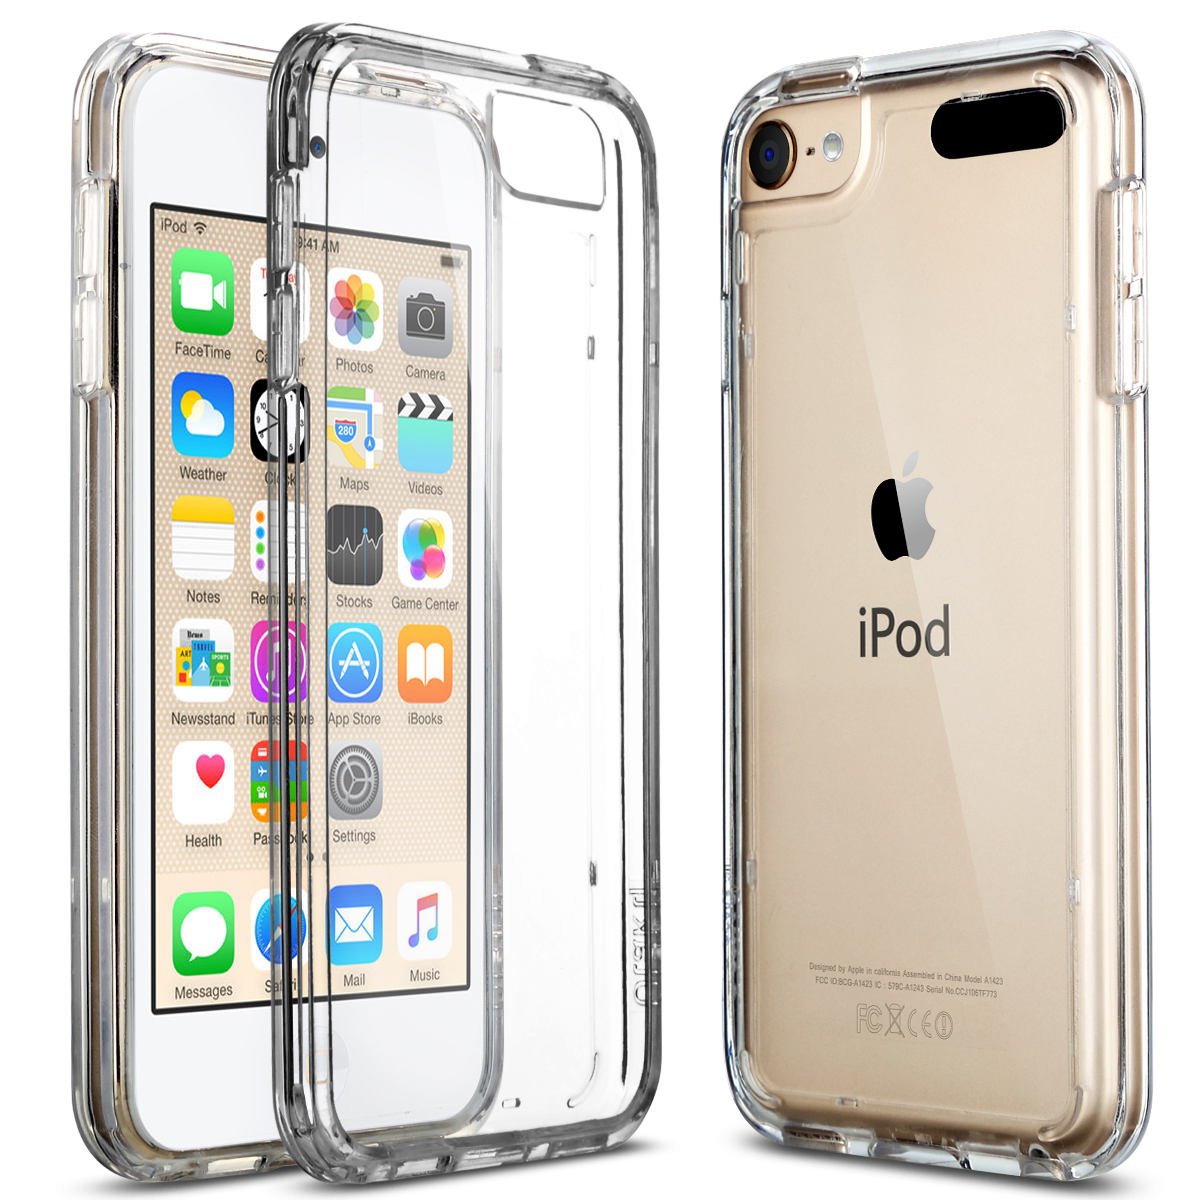 finest selection 26d37 b627a Details about iPod Touch 5th/6th Gen Case Crystal CLEAR SLIM Shockproof  Bumper Silicone Cover